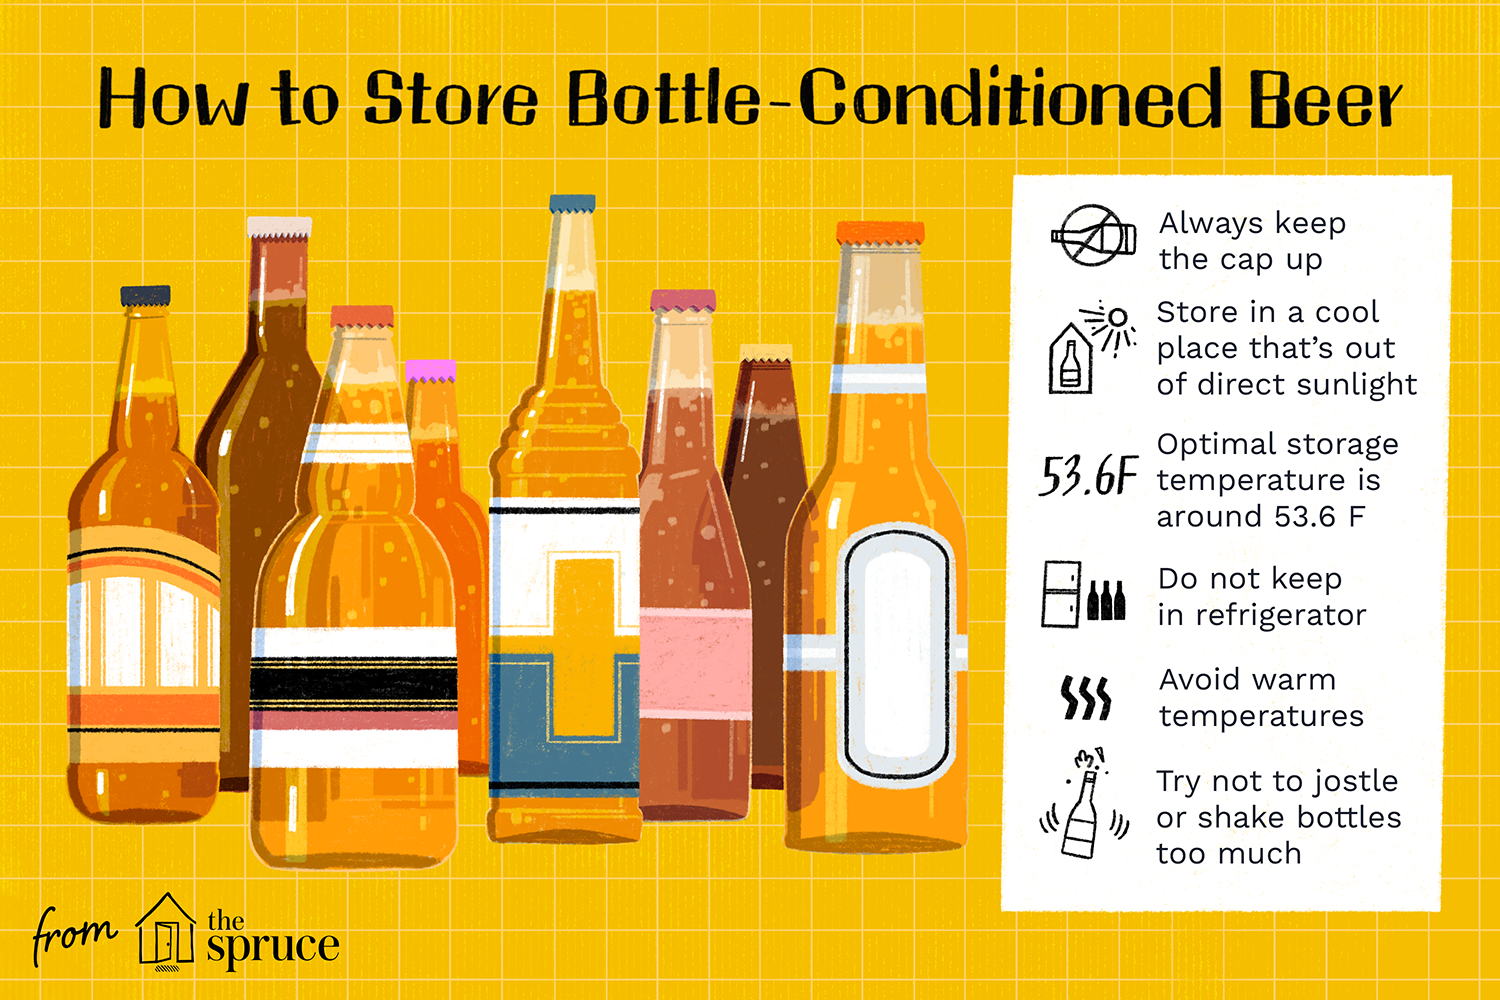 what is bottle conditioned beer